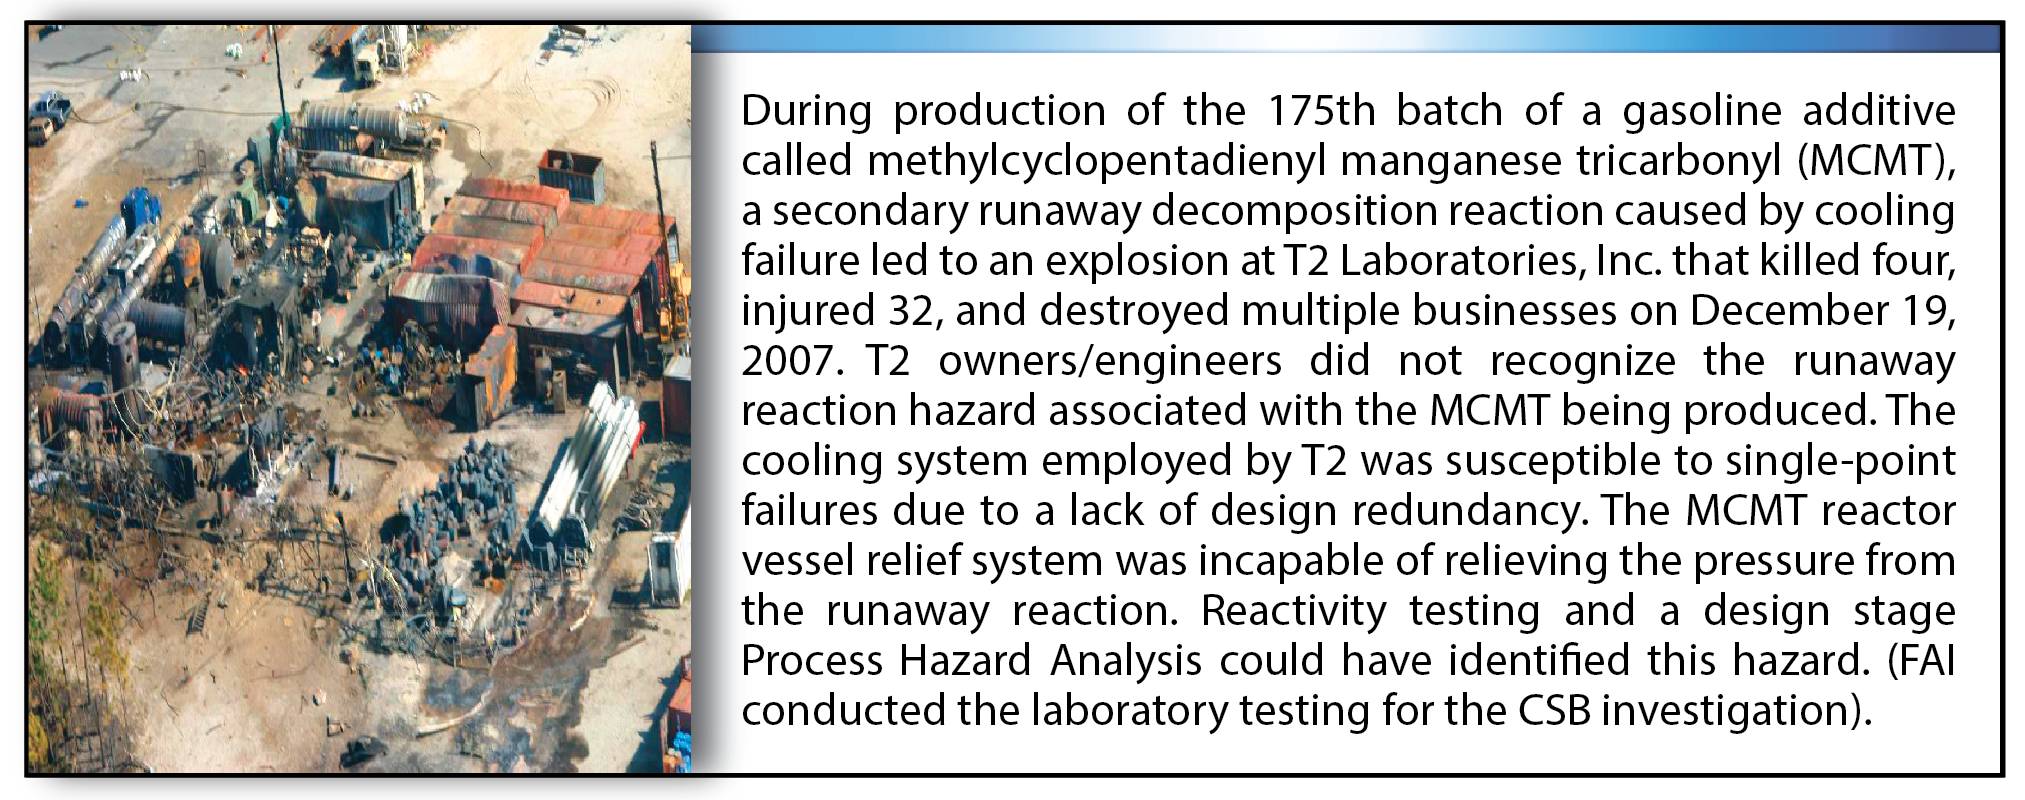 Figure 1b. – T2 Laboratories, Inc. Runaway Reaction and Explosion[4]